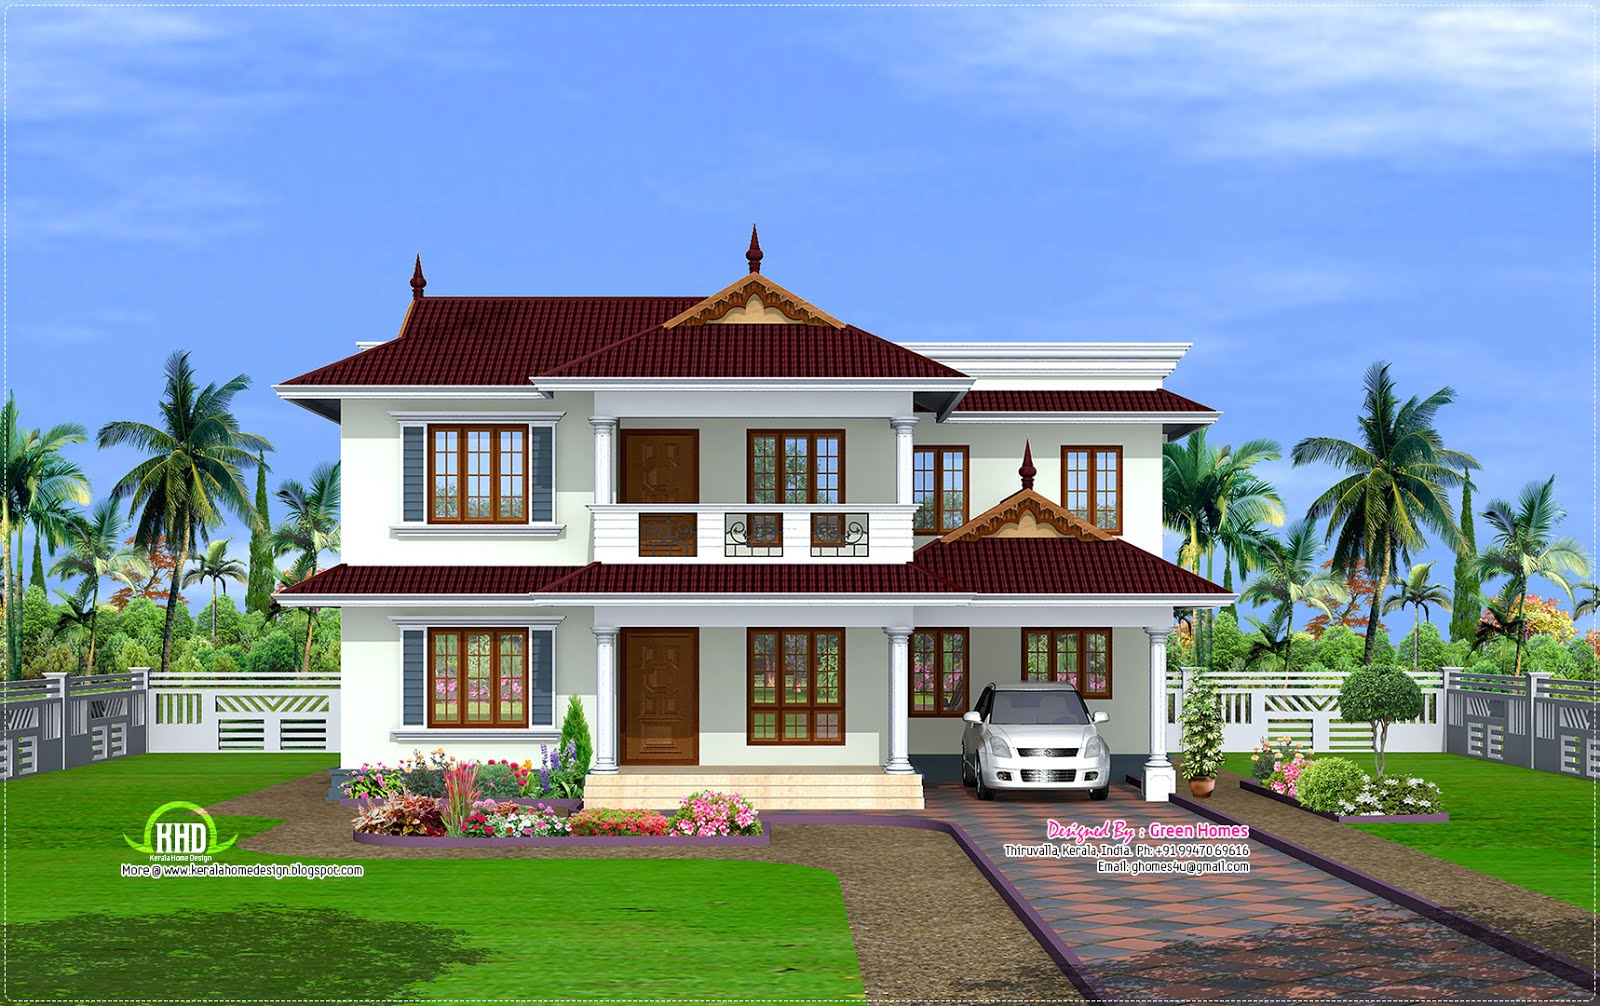 2600 kerala model house kerala home design and for Building model houses